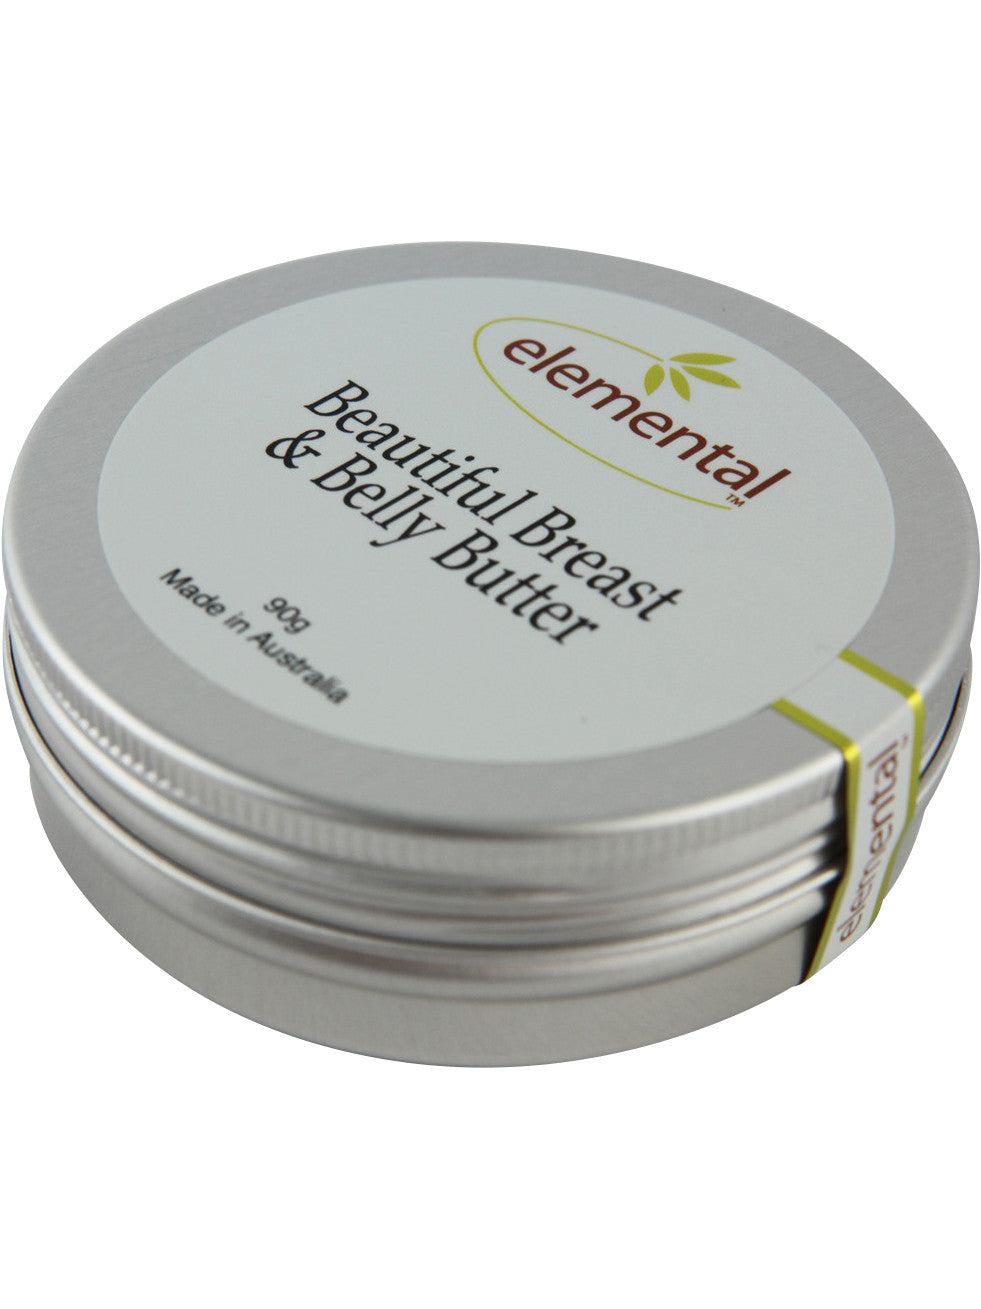 Beautiful Breast and Belly Body Butter by Elemental Organic Skin Care